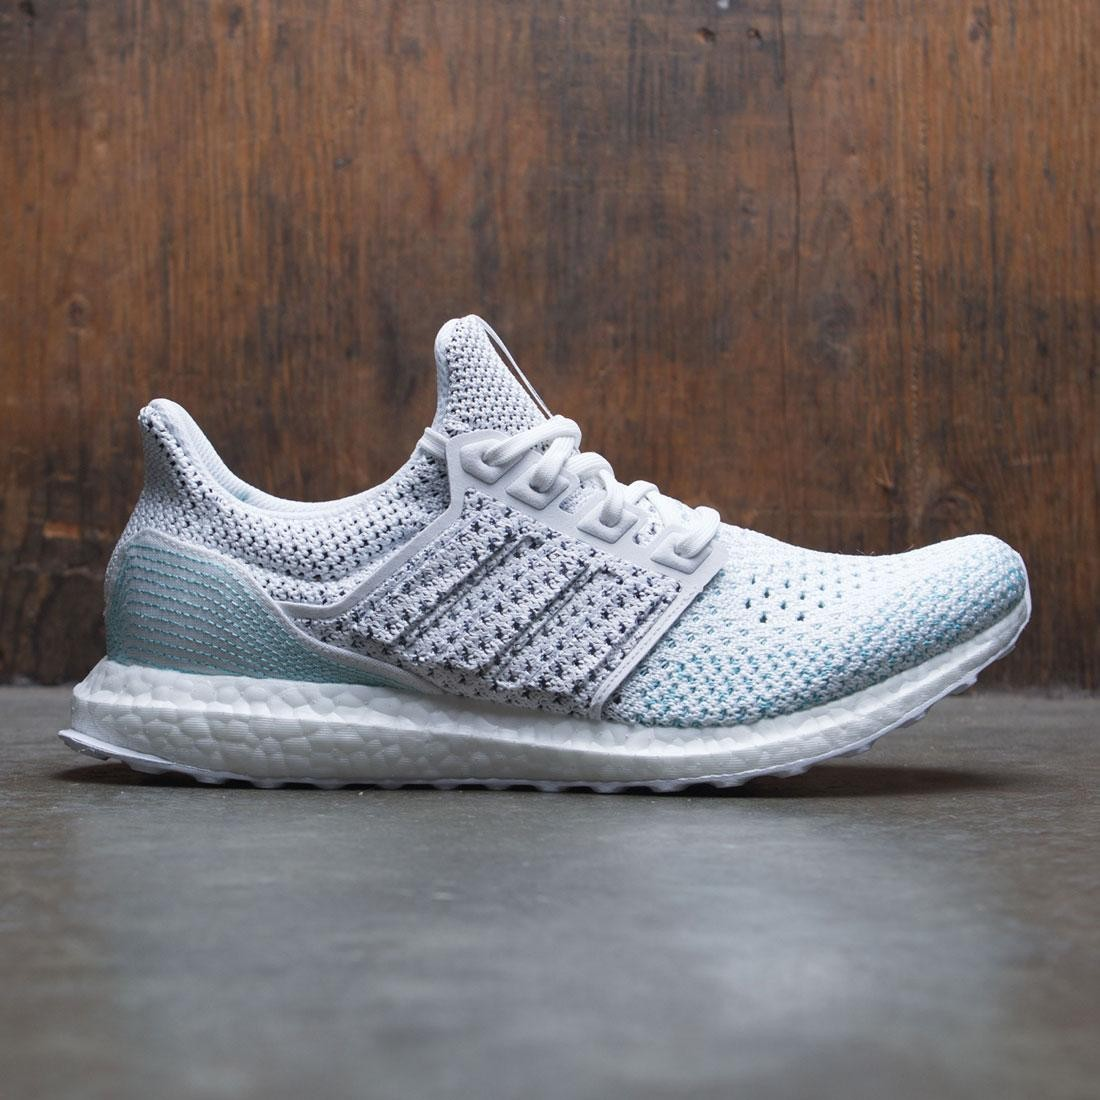 f9d0296ec Adidas Men UltraBOOST Parley LTD white footwear white blue spirit